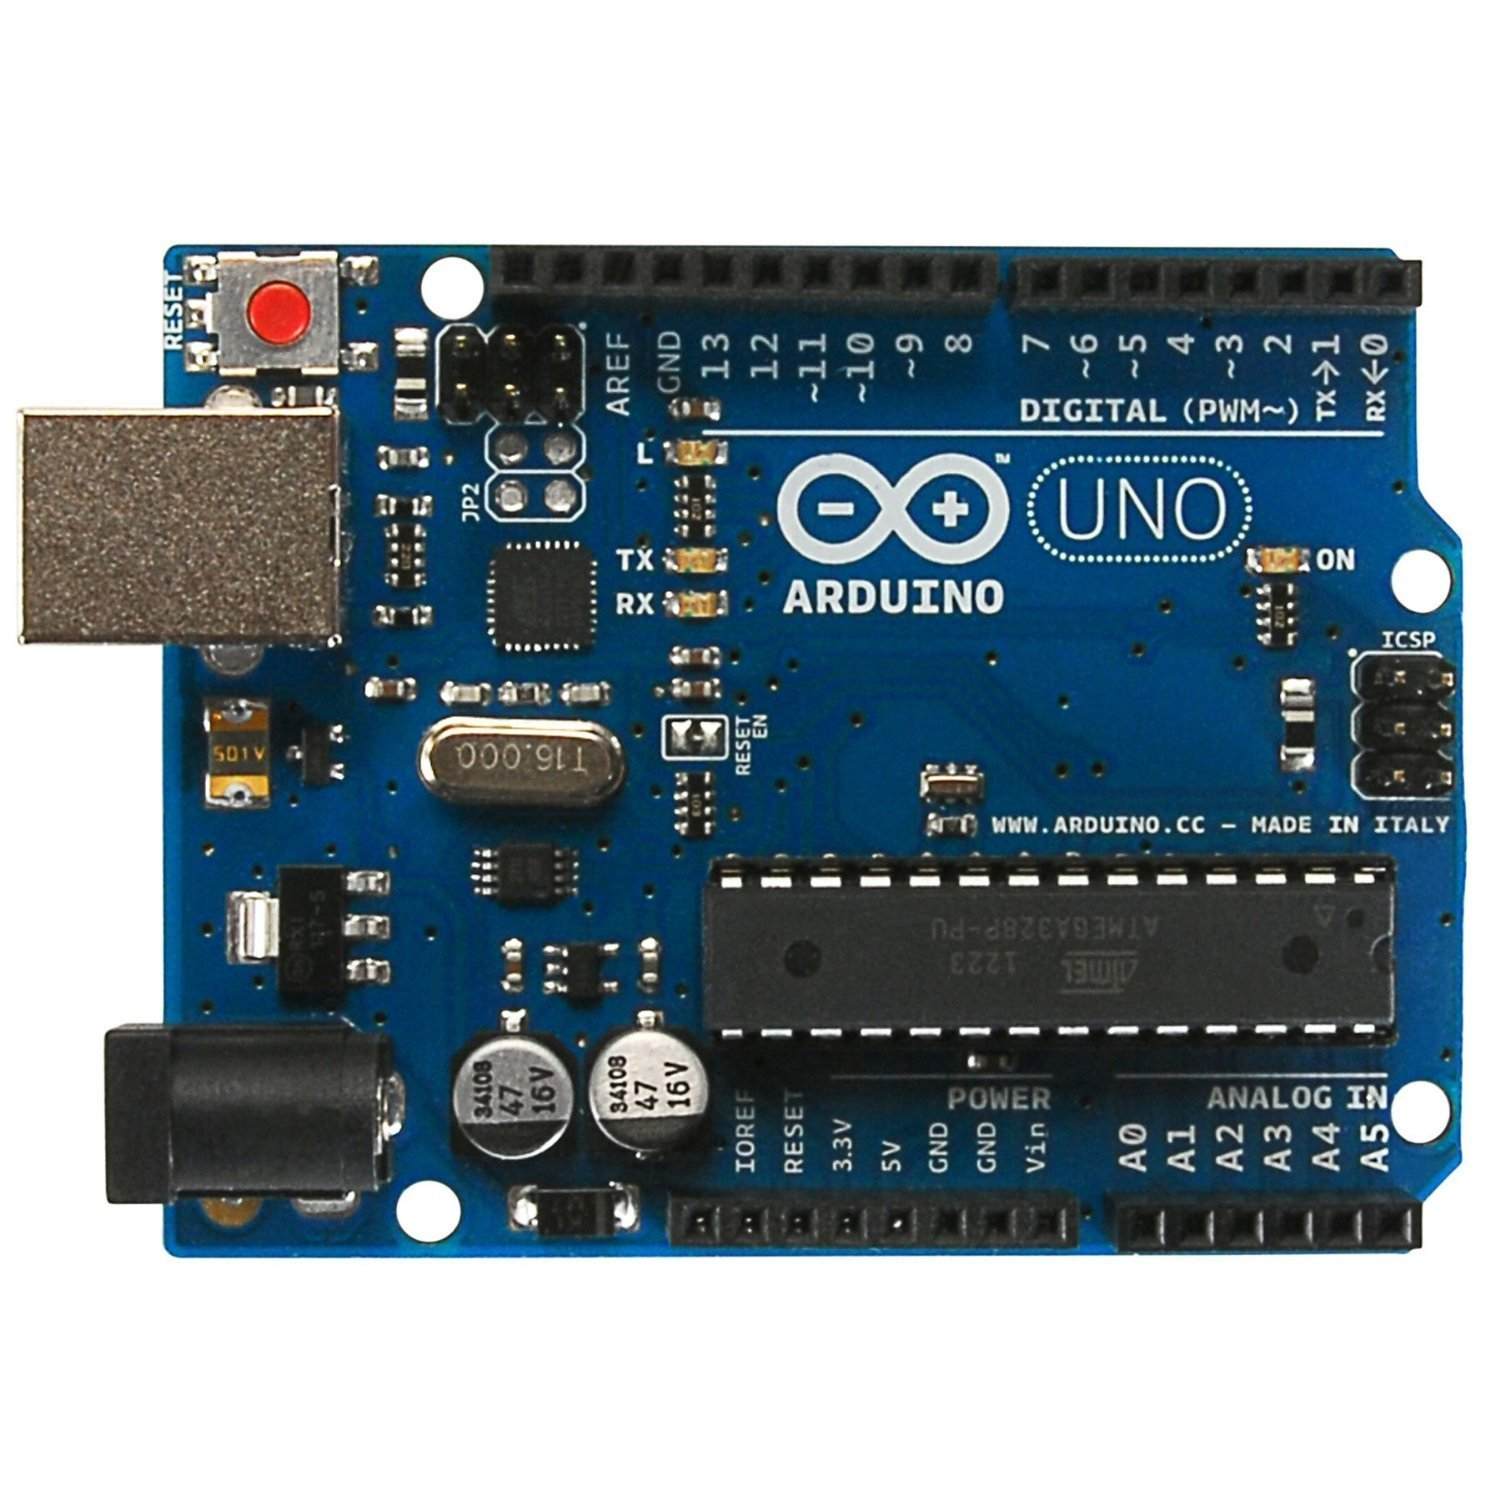 The Official Starter Kit For Arduino Uno R3 Advanced Selfbalancing Robot With Basic Electronics Hacks Mods Circuitry Programming Getting Started Sketches By Simon Monk Computers